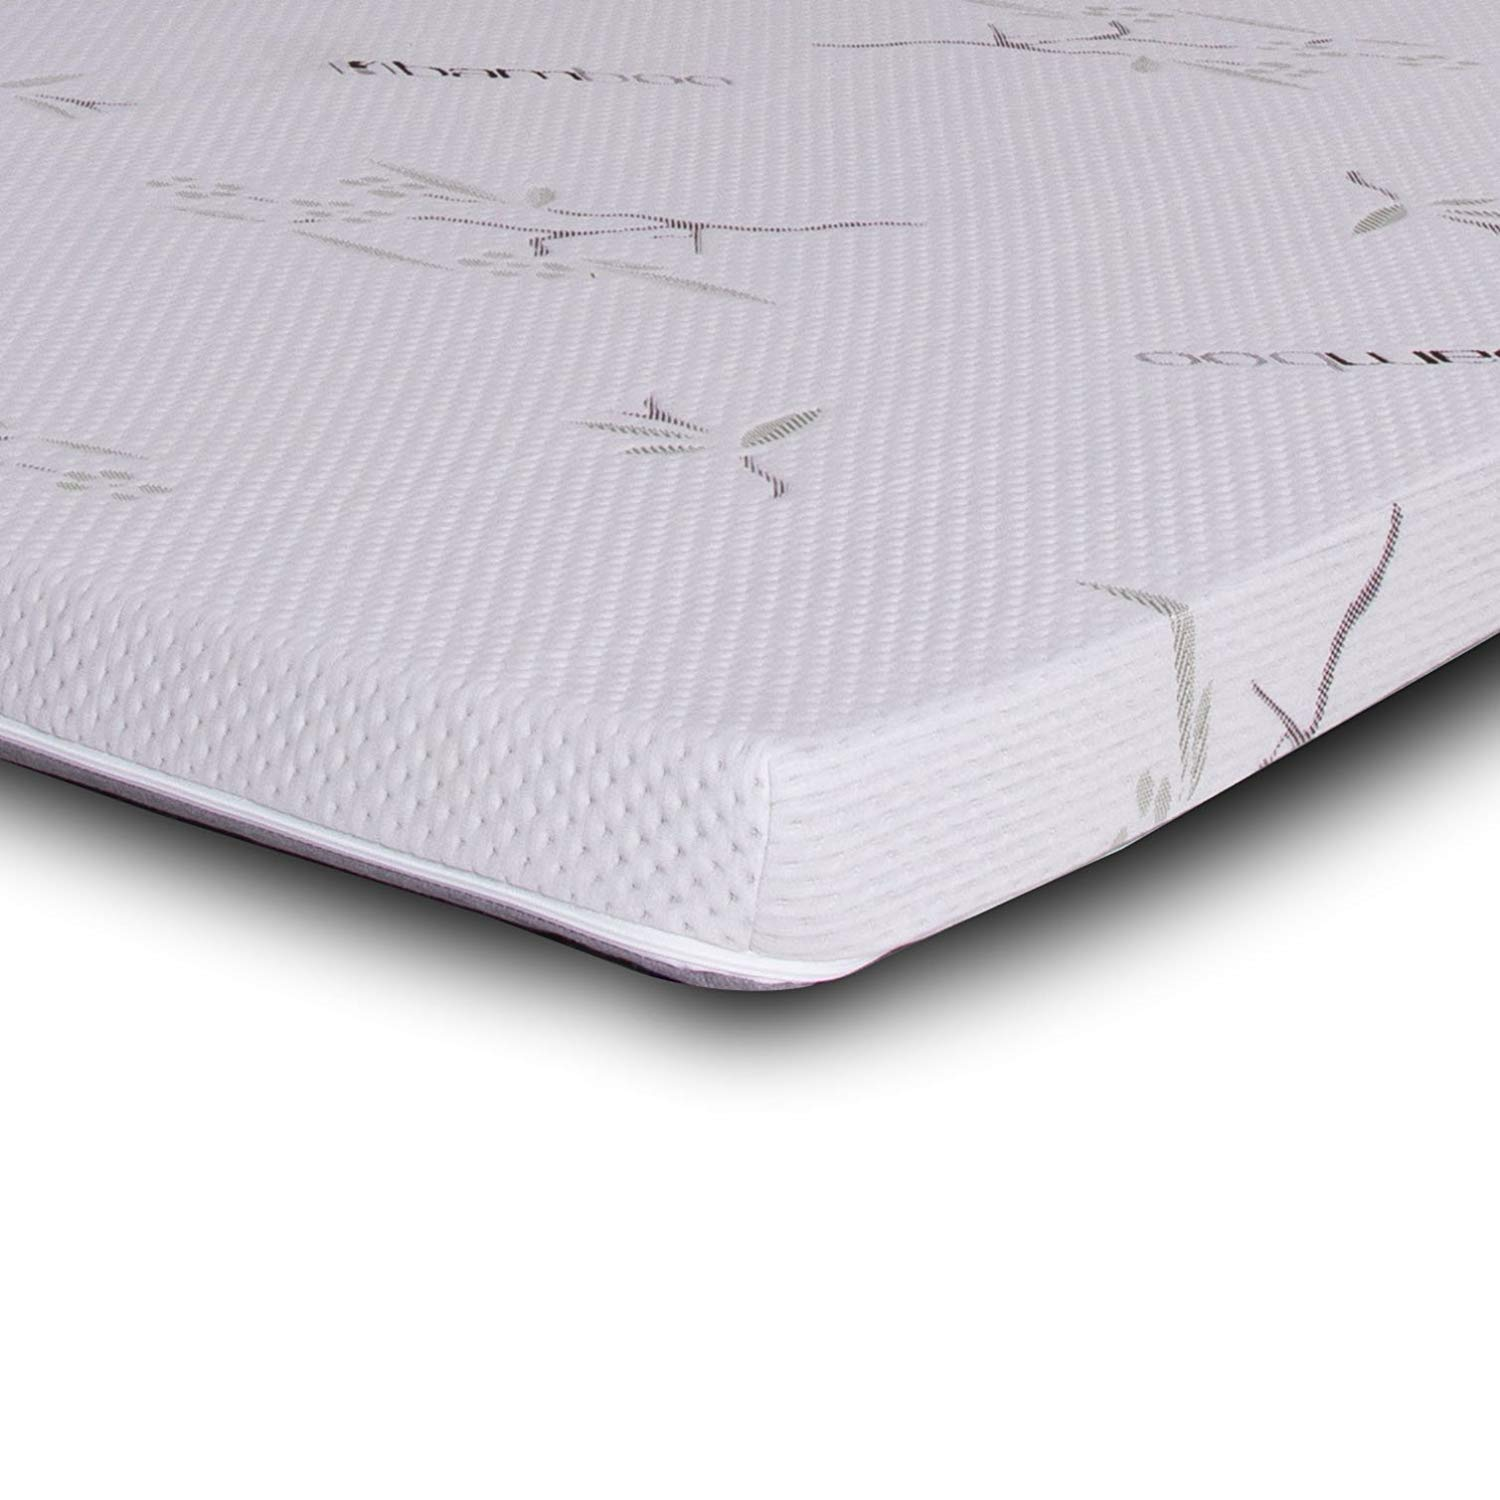 What Kind Of Mattress Is Good For Back Pain The Best Mattress Topper For Back Pain Brands And Buying Guide For